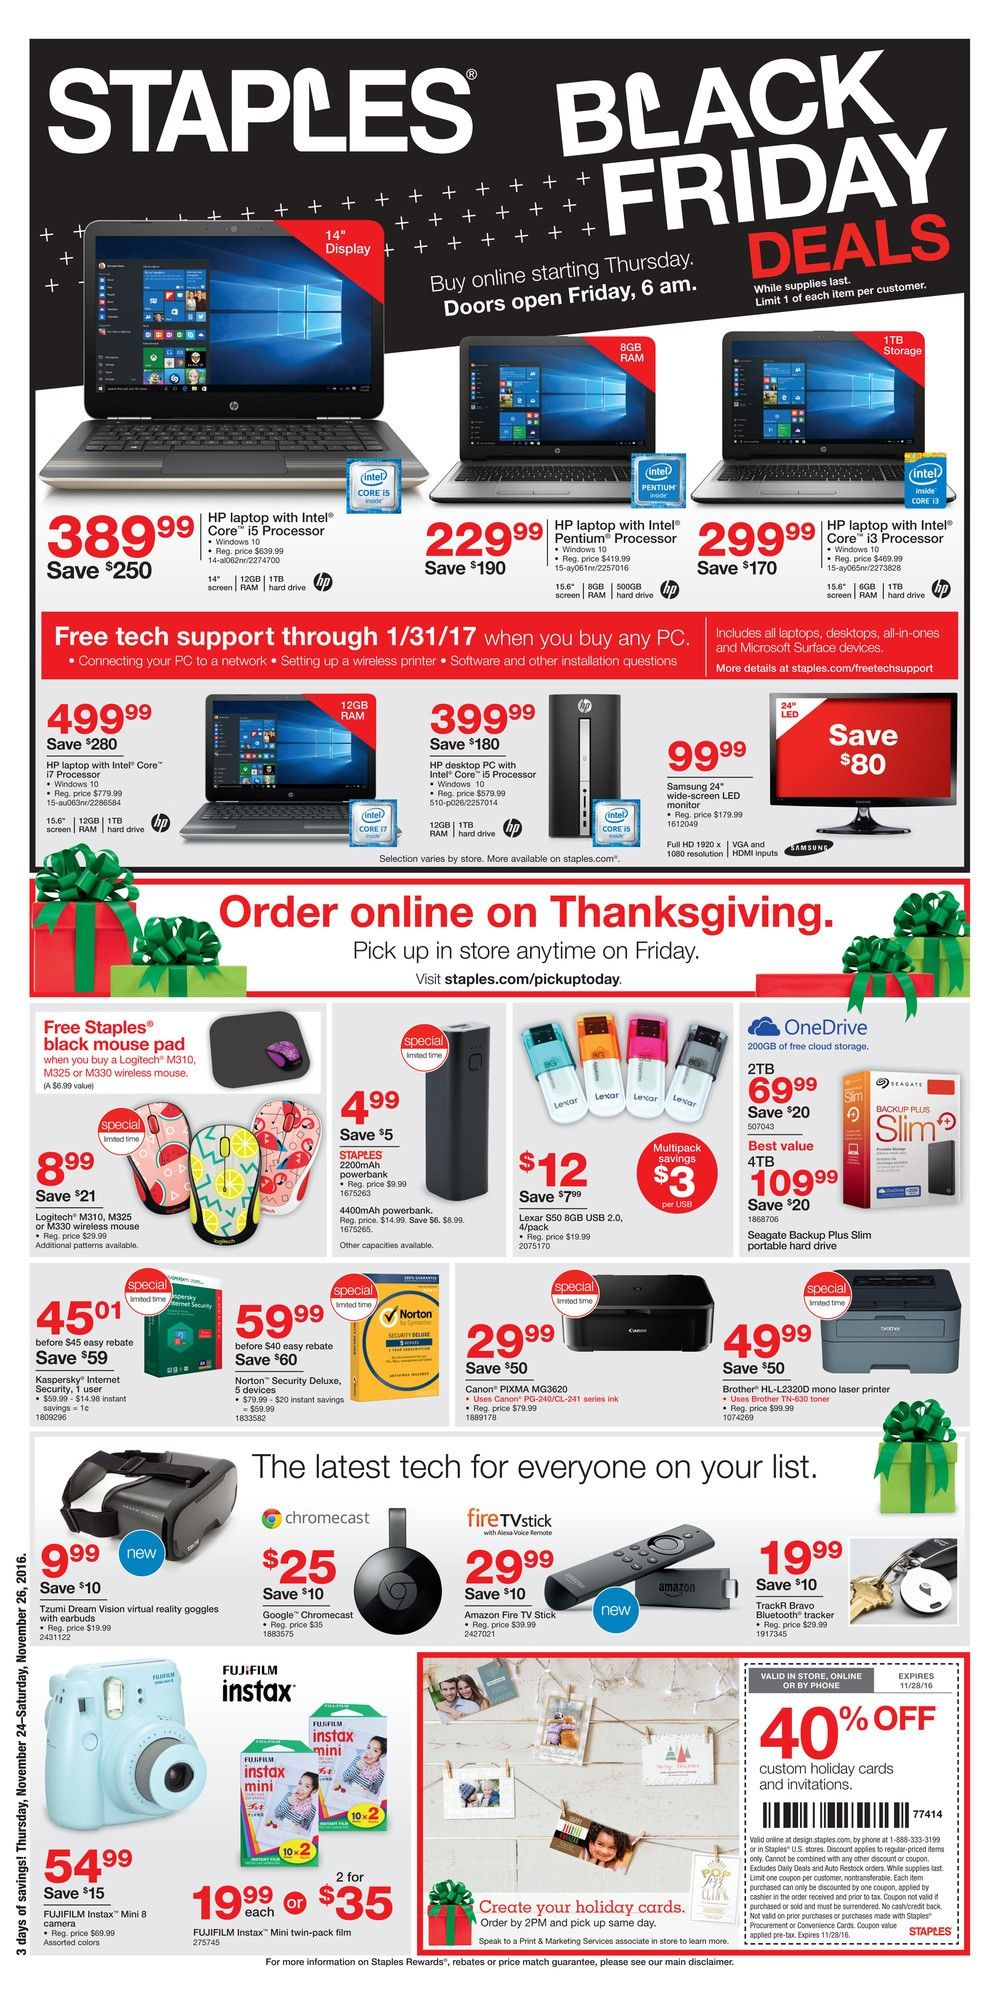 Pin by Nick W on Black Friday Ads & Deals Black friday